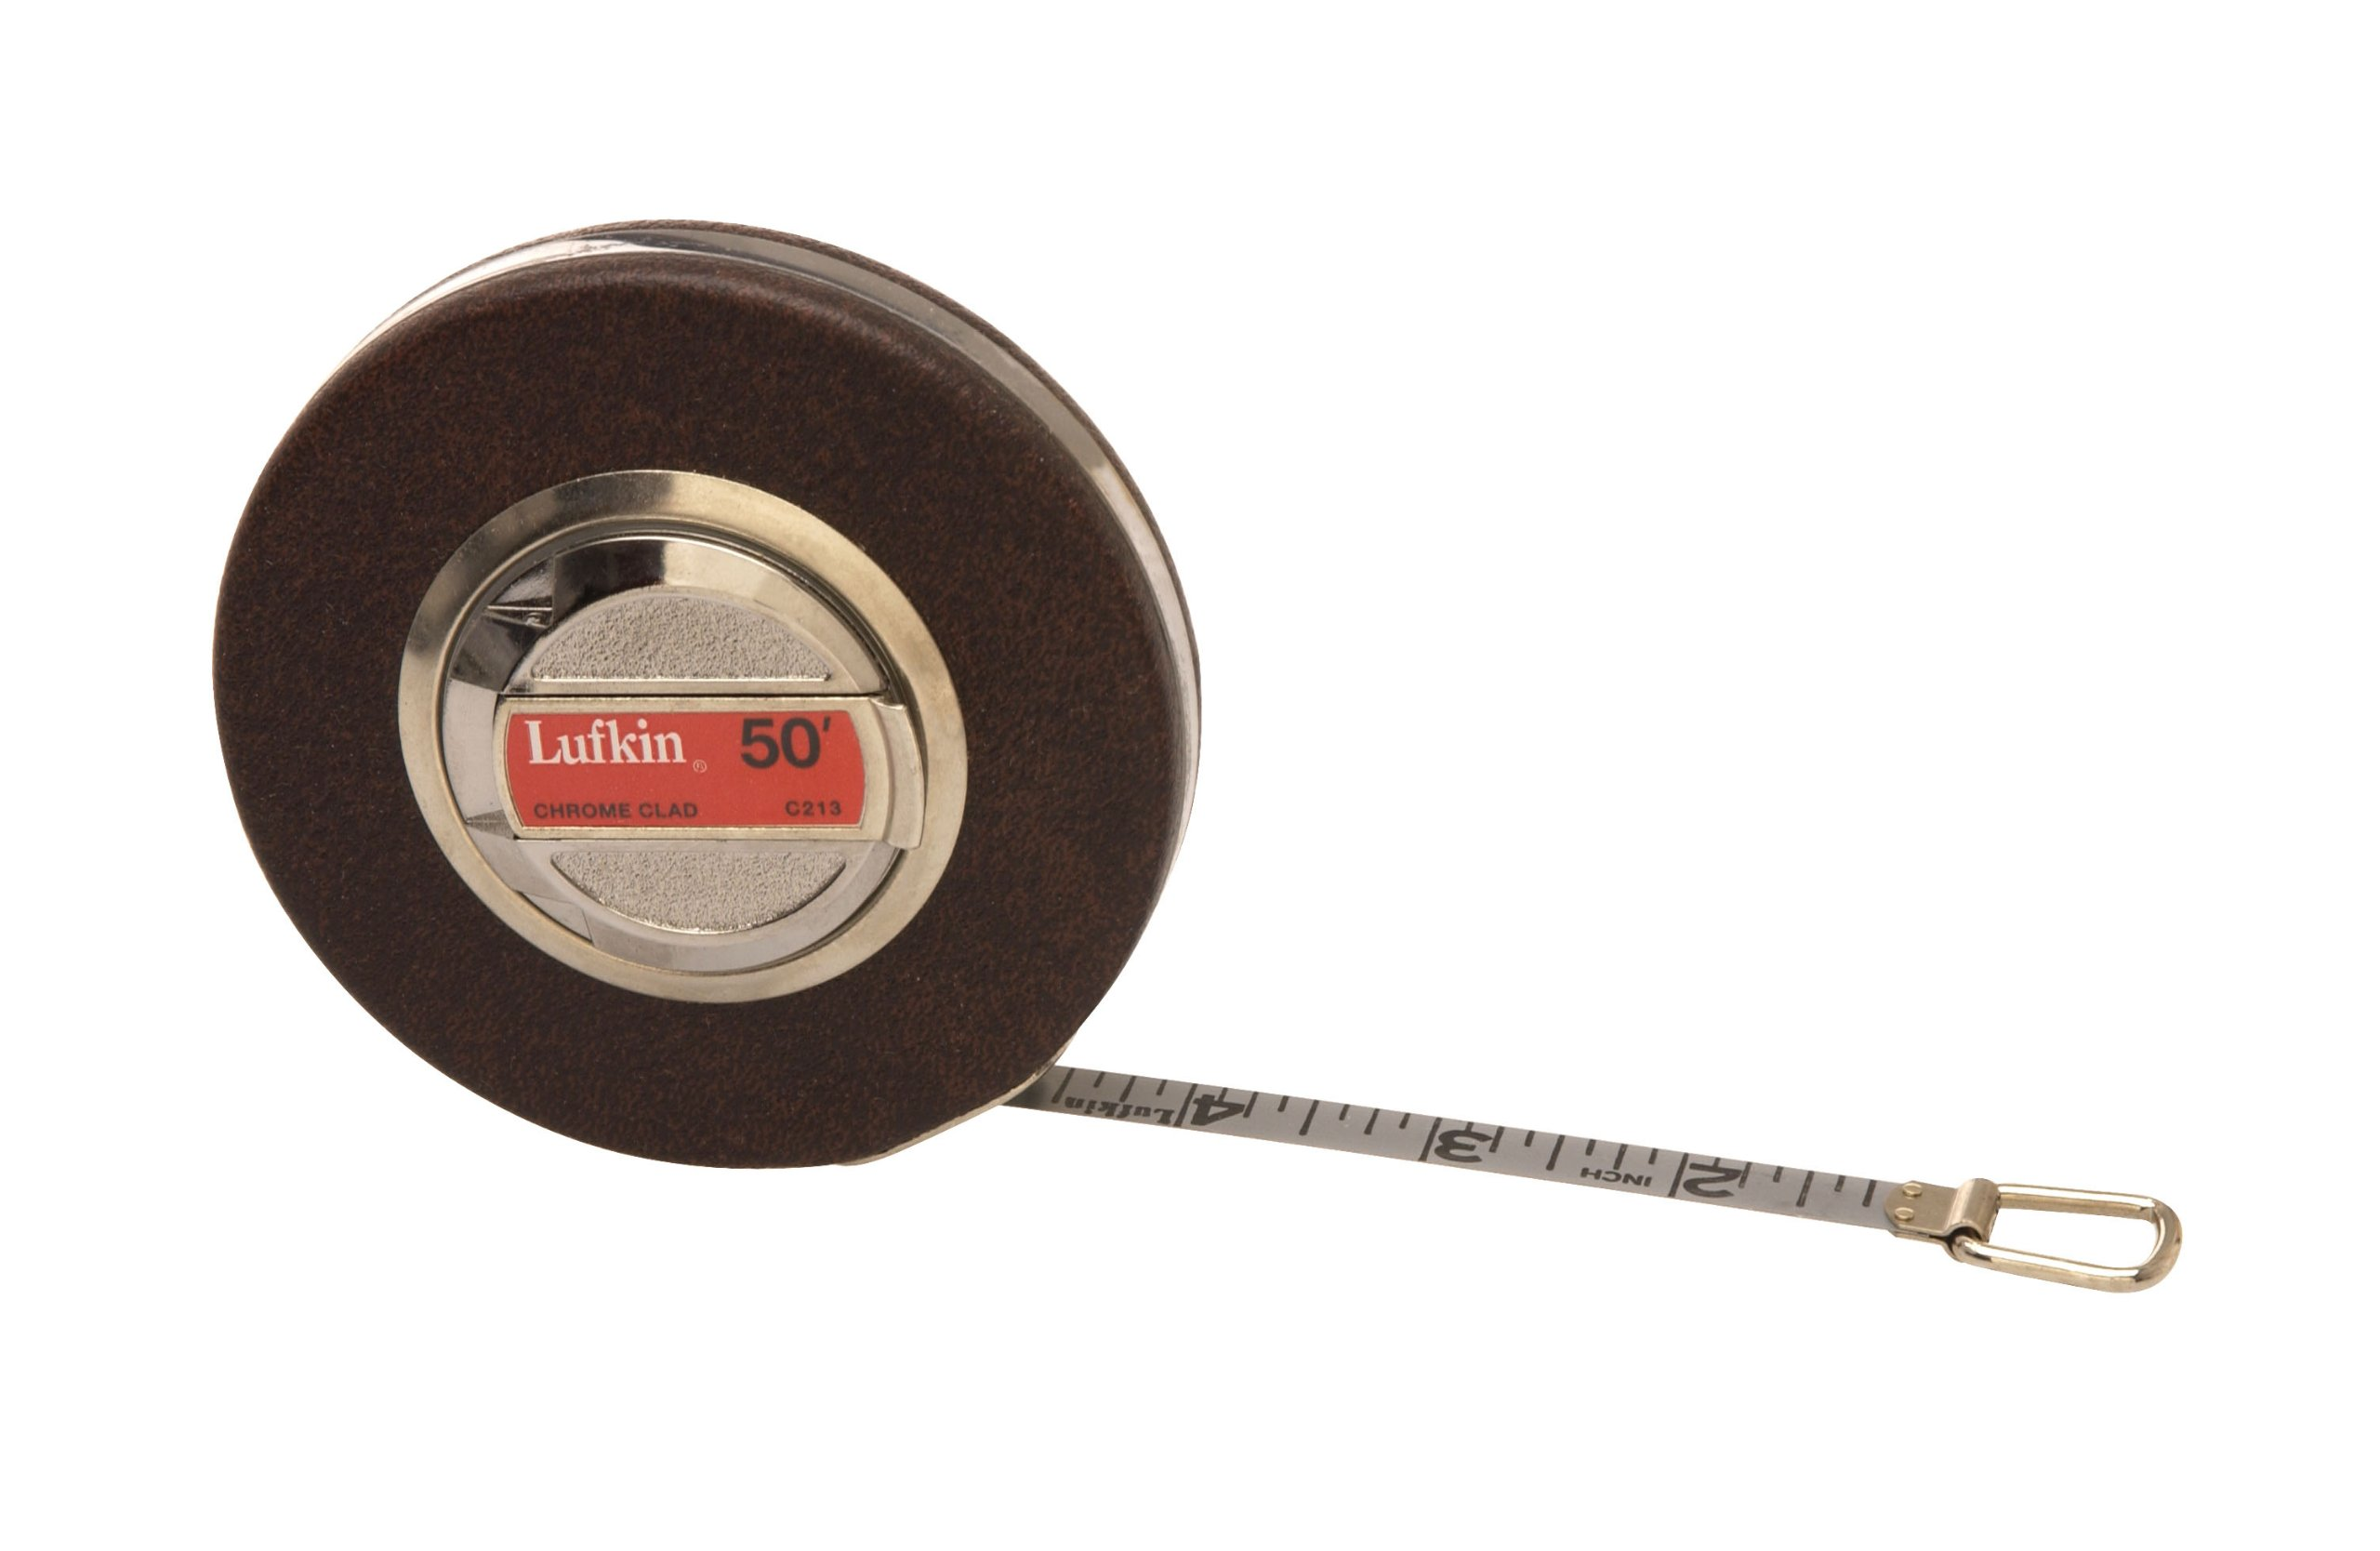 Lufkin C213 3/8-Inch by 50-Foot Anchor Chrome Clad Tape